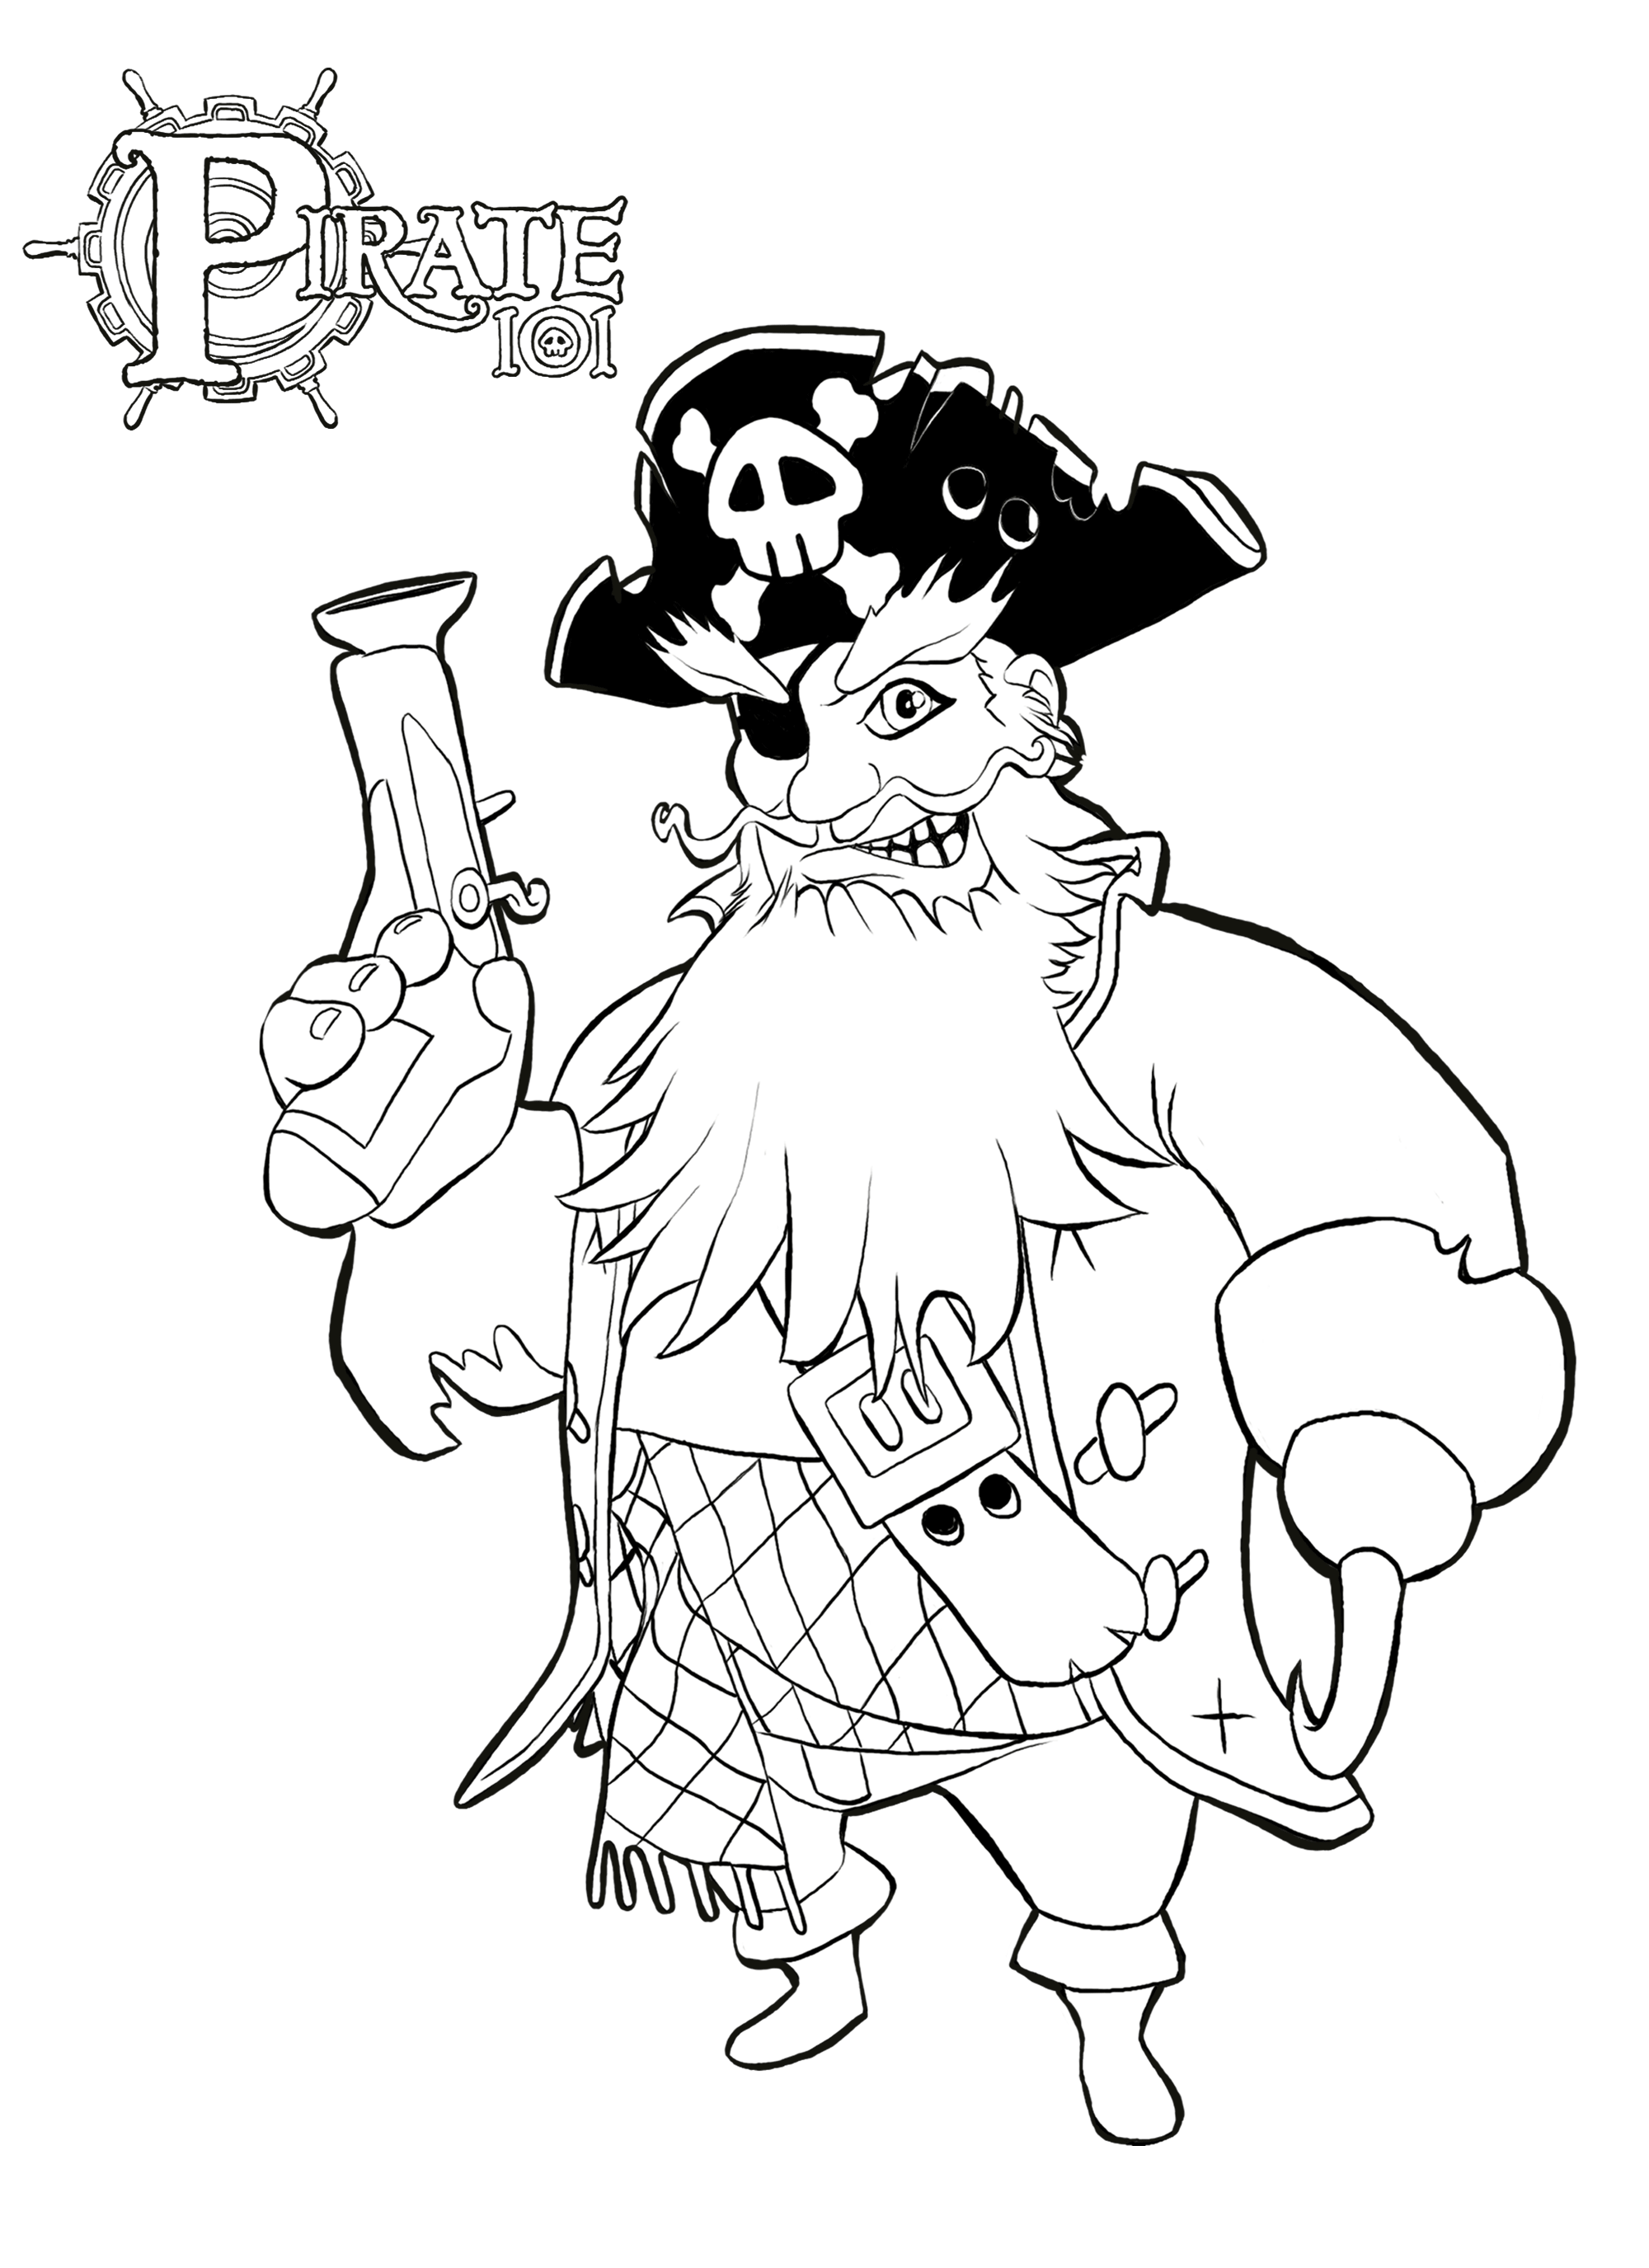 Pirate colouring pages to print - Download Boochbeard Coloring Page